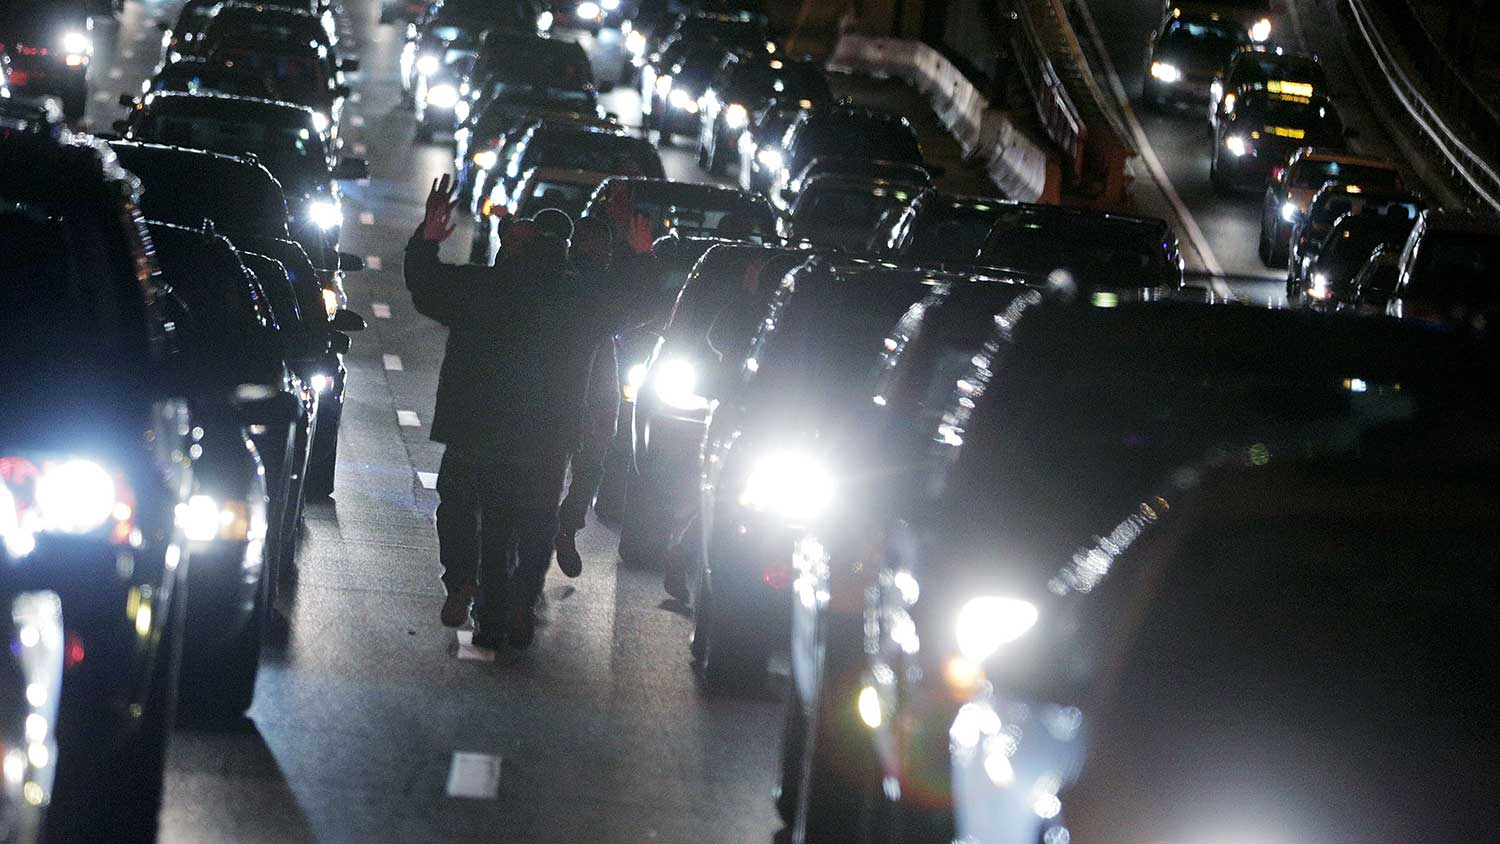 Demonstrators walk in traffic on Highway I-395 during a protest following the grand jury's decision on Dec. 3, 2014, in Washington, D.C.